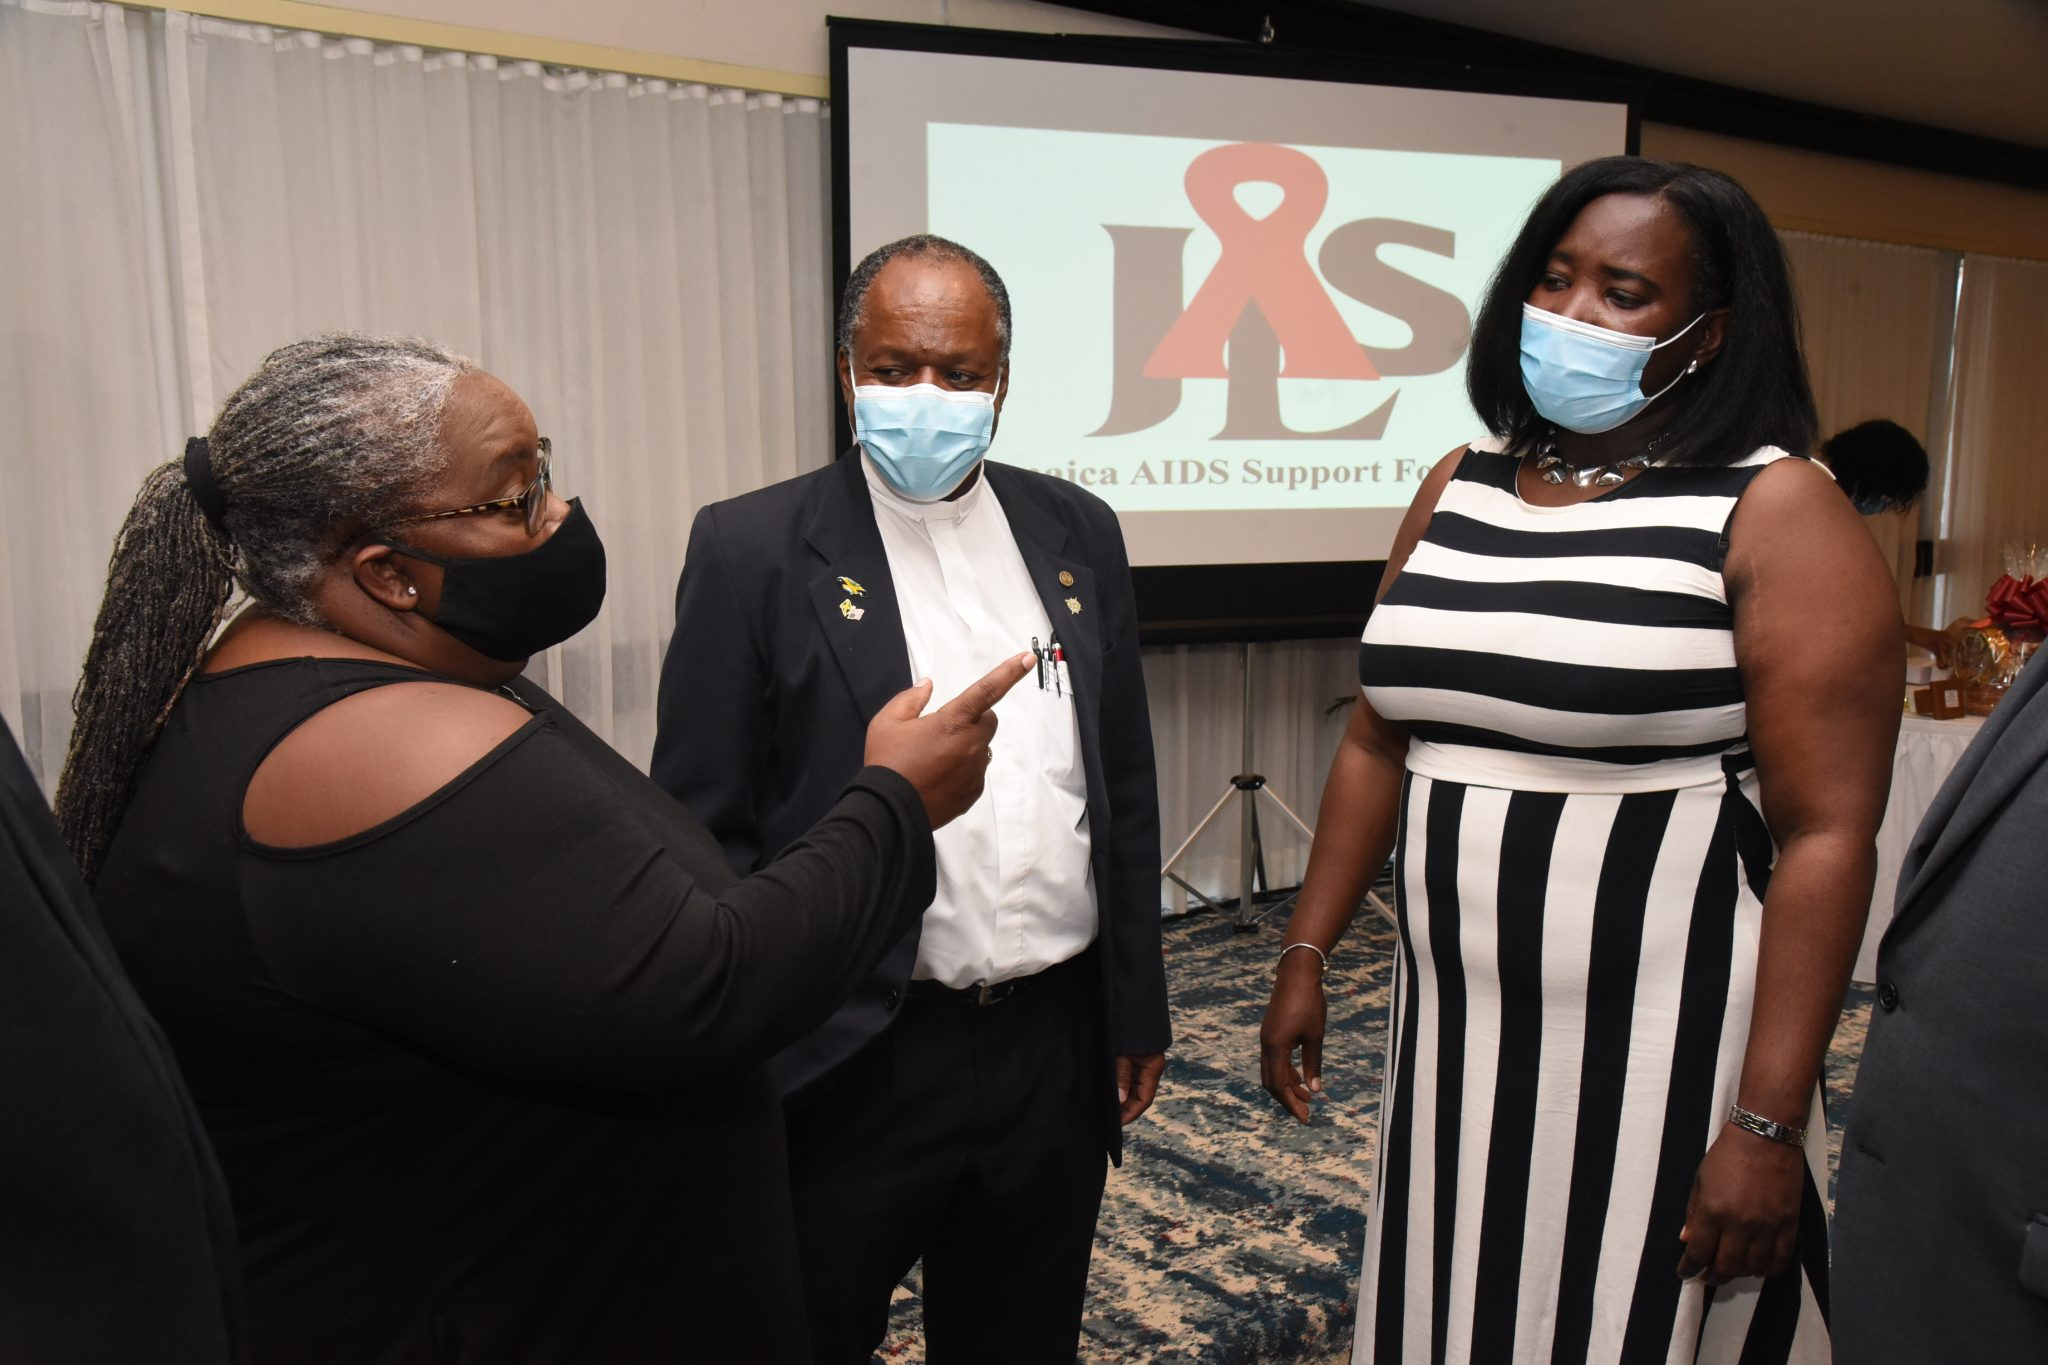 PHOTOS: Jamaica AIDS Support for Life (JASL) 30th Anniversary Launch